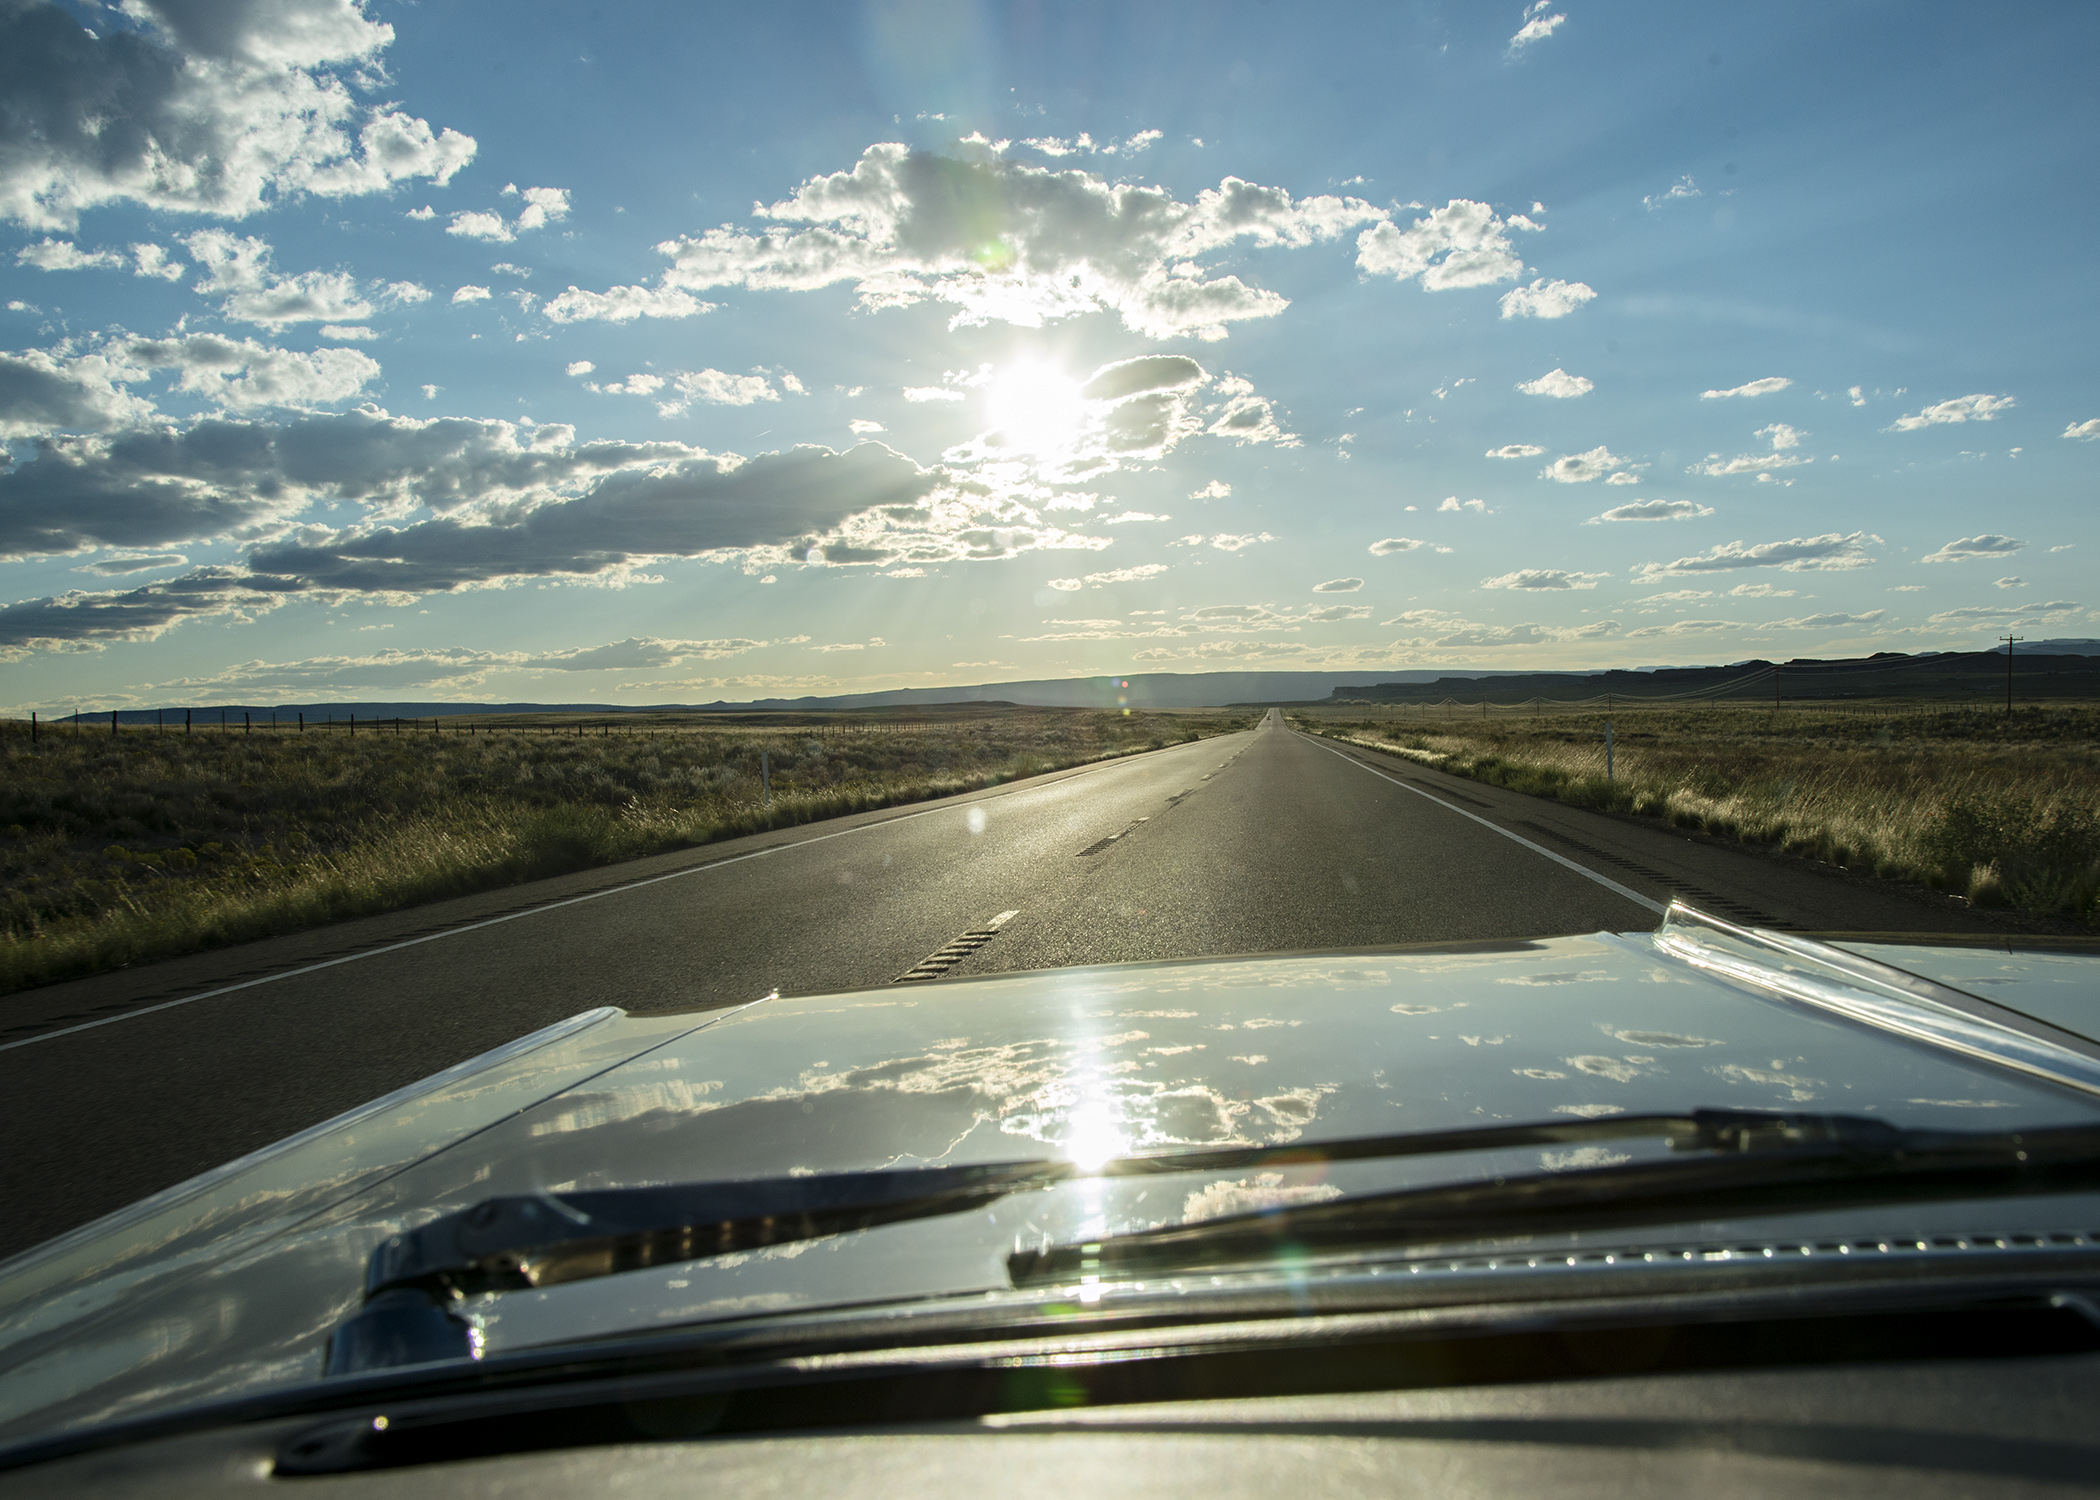 Heading into the sun, the clouds create a mirror image on the hood. Nikon D800, 24-120mm lens @ 30mm, iso 200, f11, 1/800 sec.